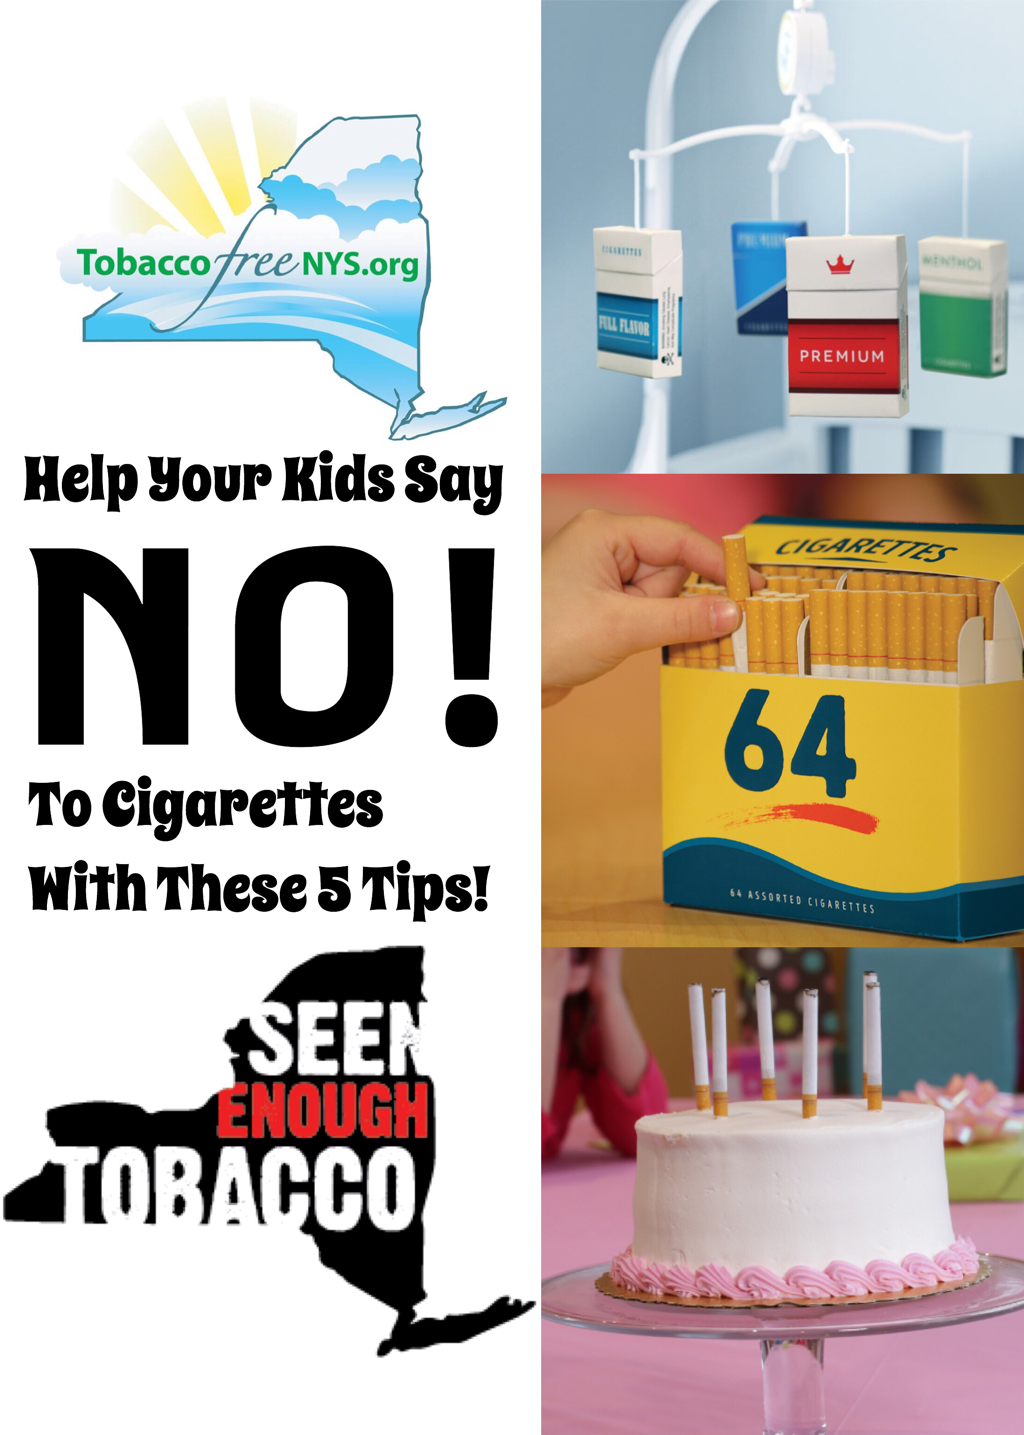 Help Your Kids Say No! To Cigarettes With These 5 Tips!